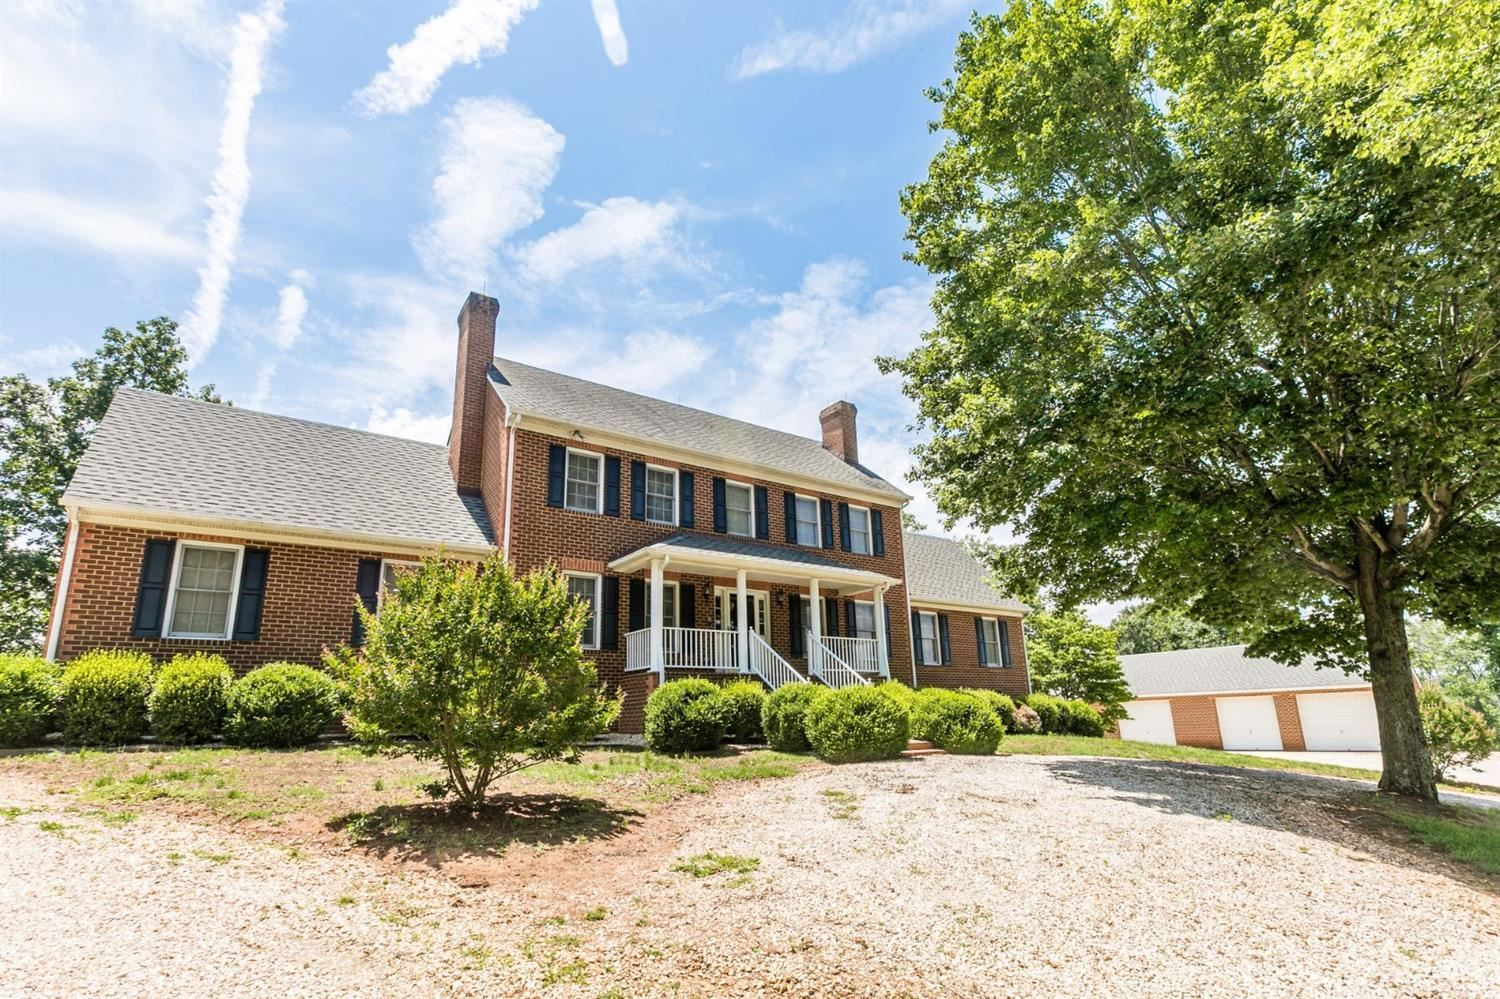 Photo for 1583 Walkers Ford Road, Concord, VA 24538 (MLS # 326732)